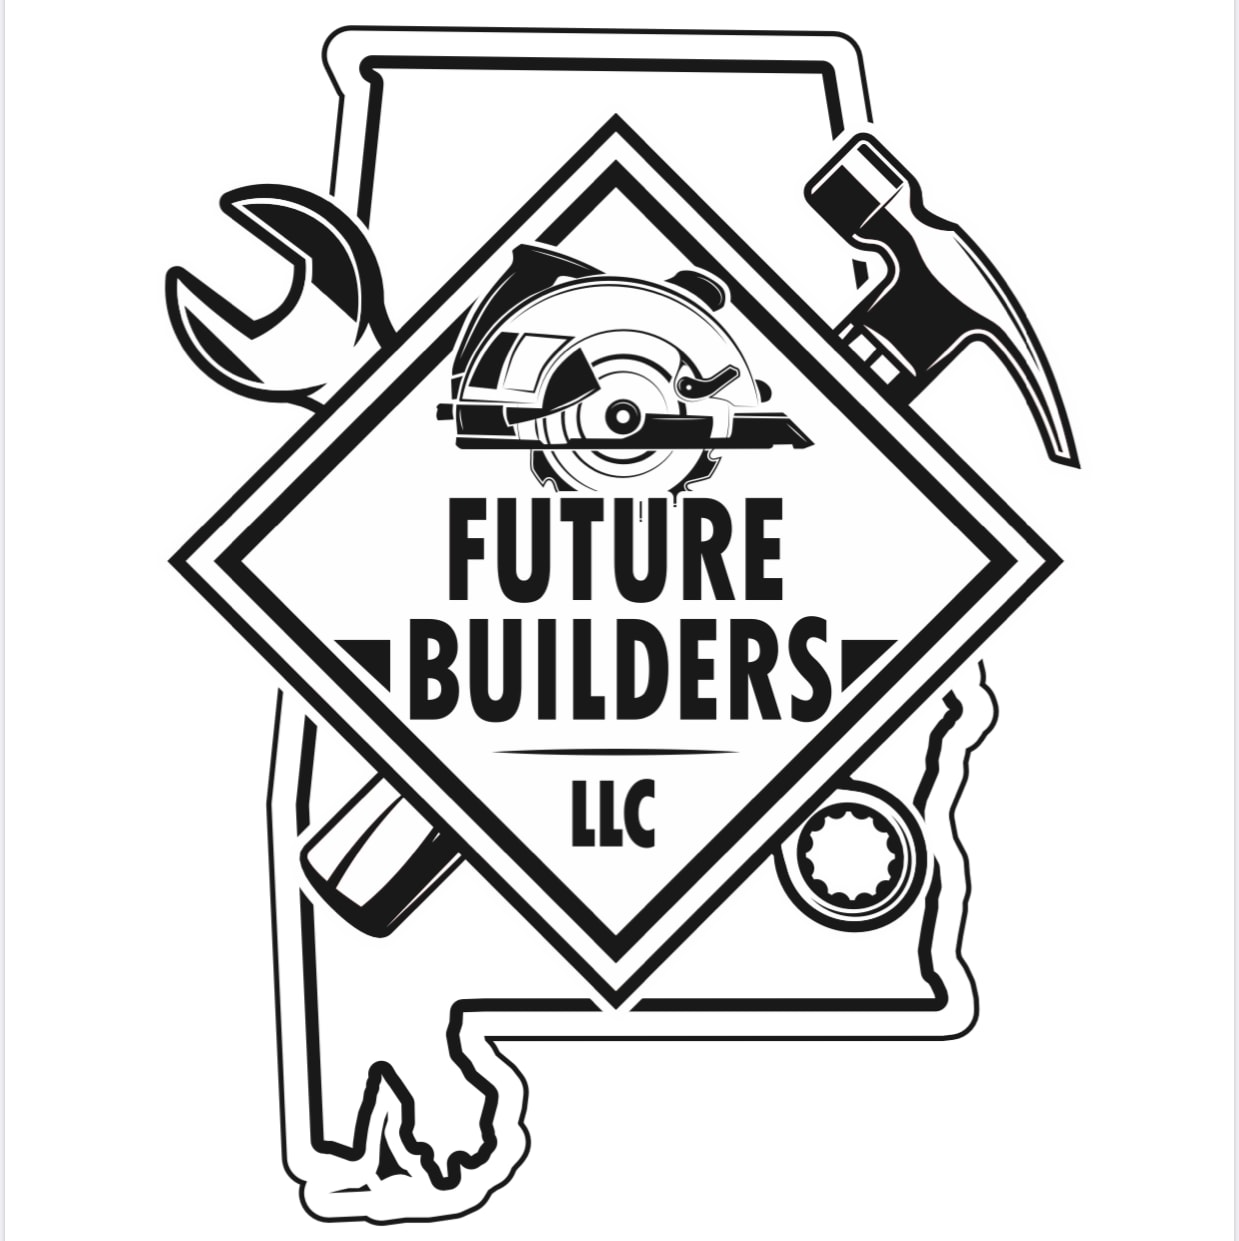 Future Builders LLC